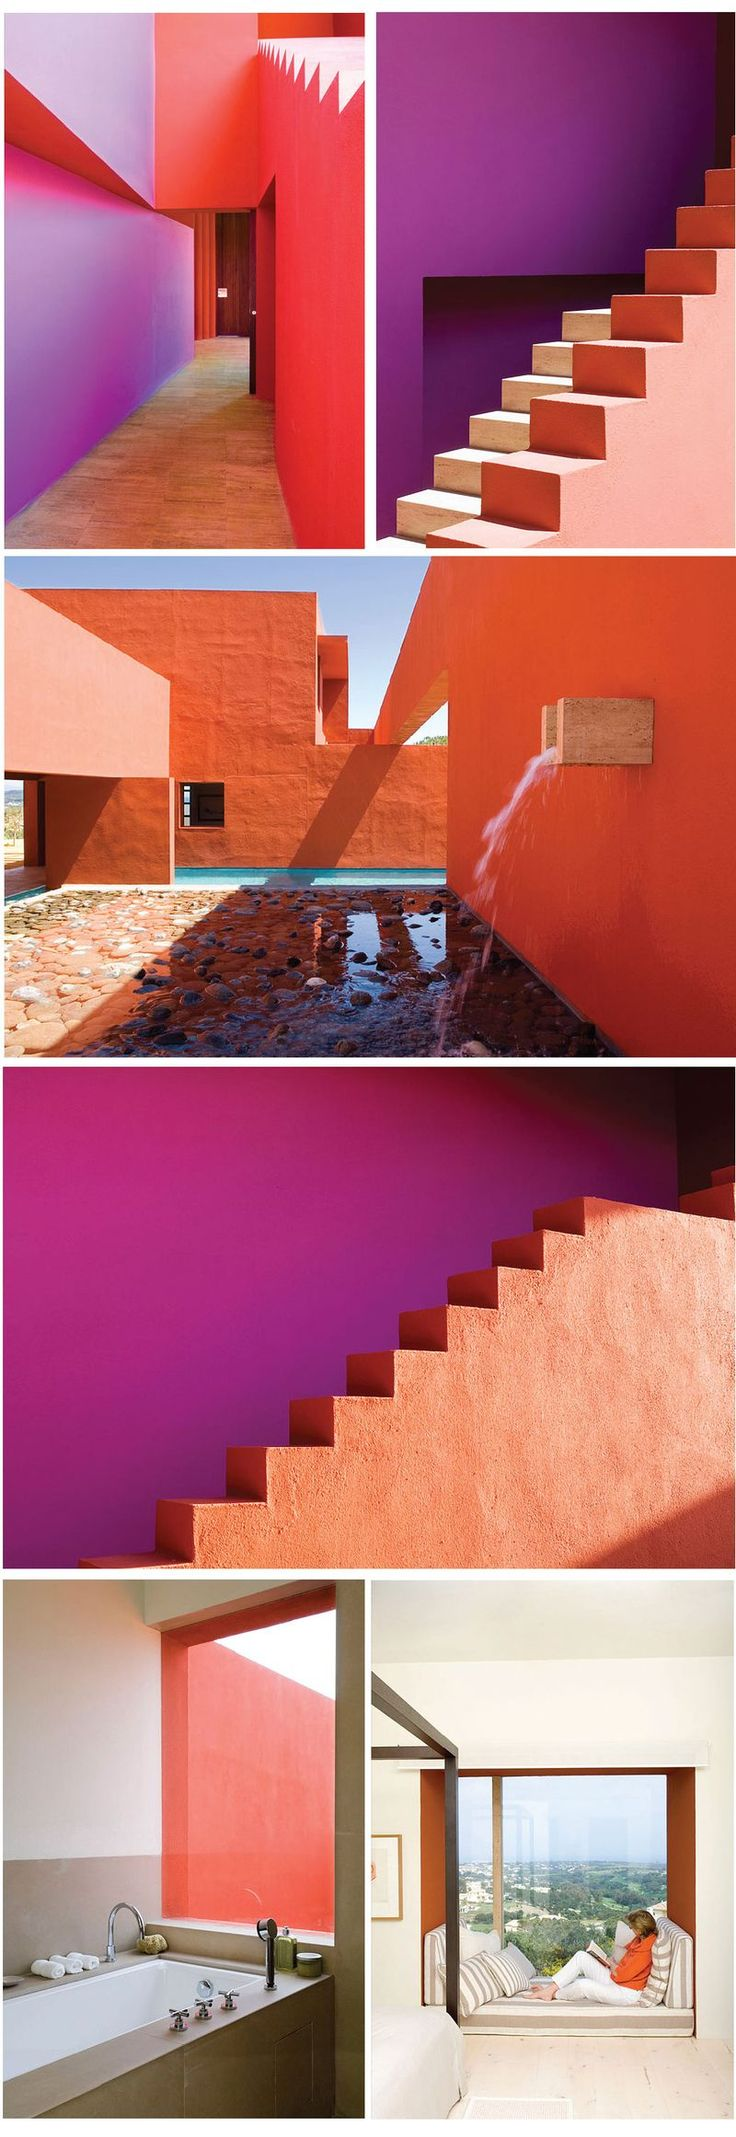 Ricardo legorreta admiring the bold color blocking created on the exterior surfaces of this residence in legorreta spain the interior is painted in a